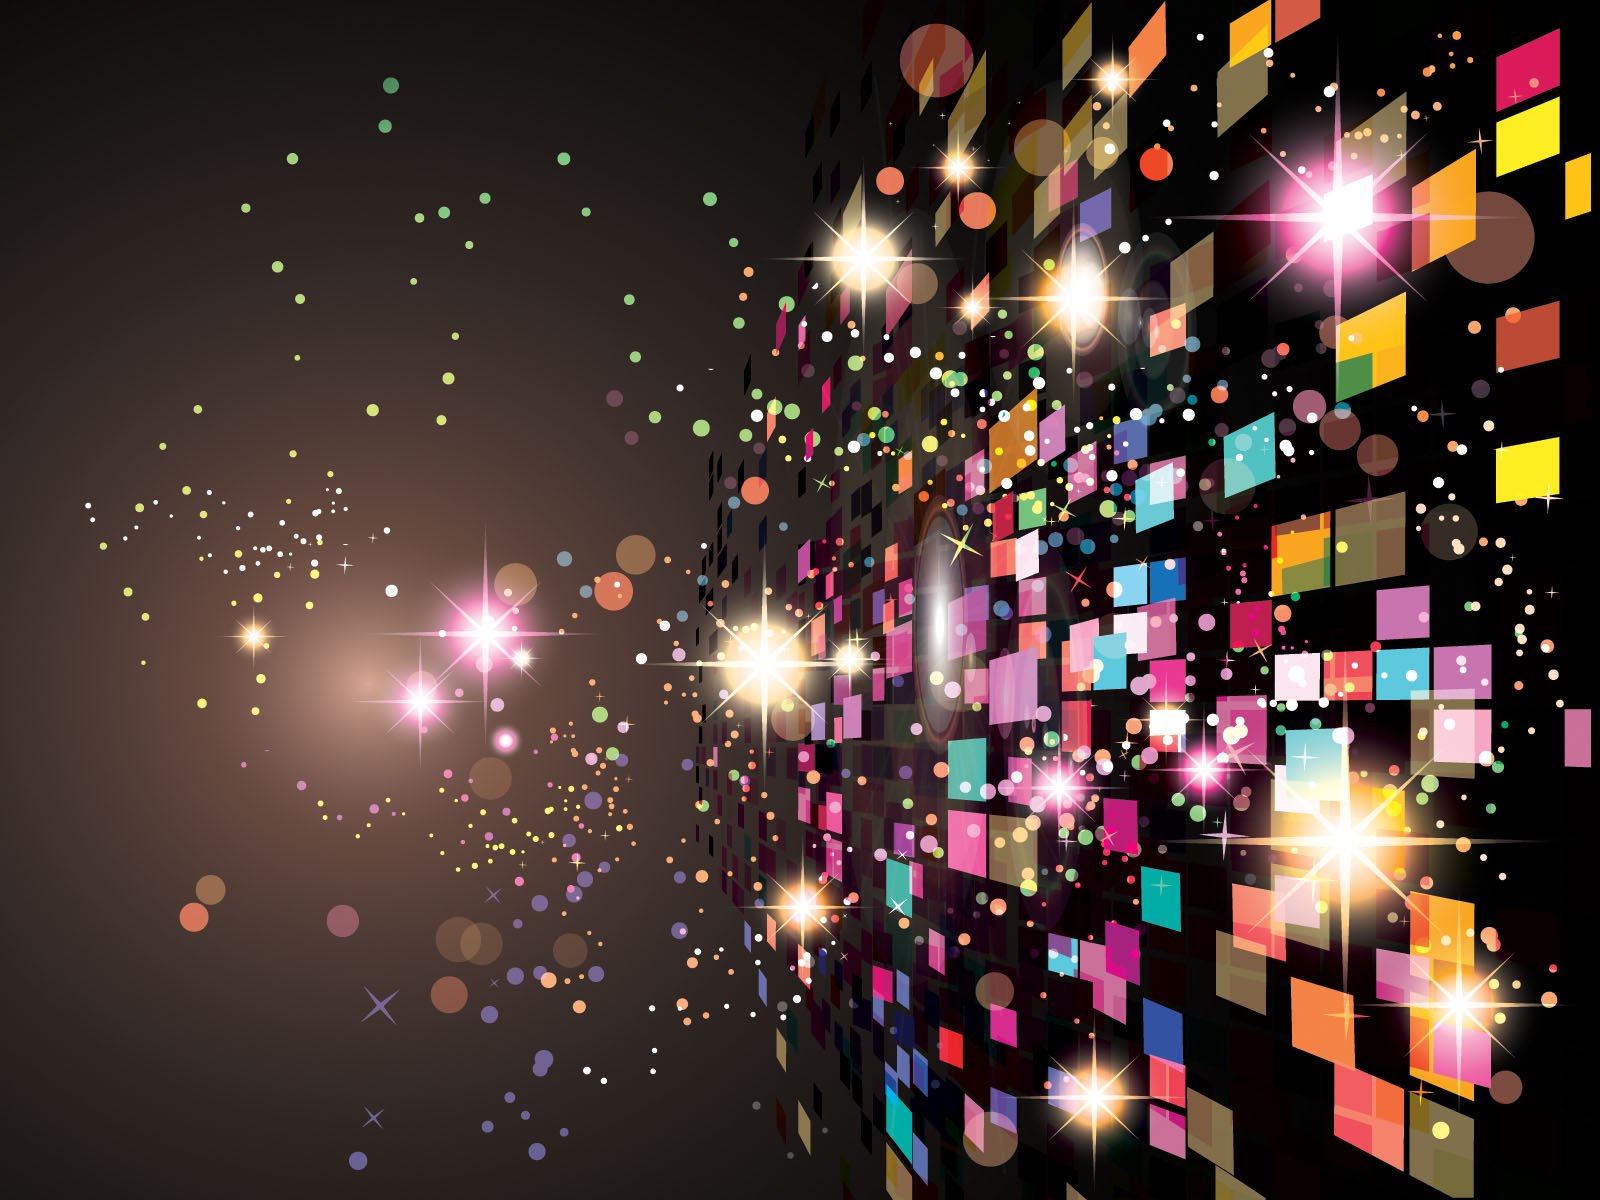 World Lights Abstract Powerpoint Templates - Abstract, Black ...